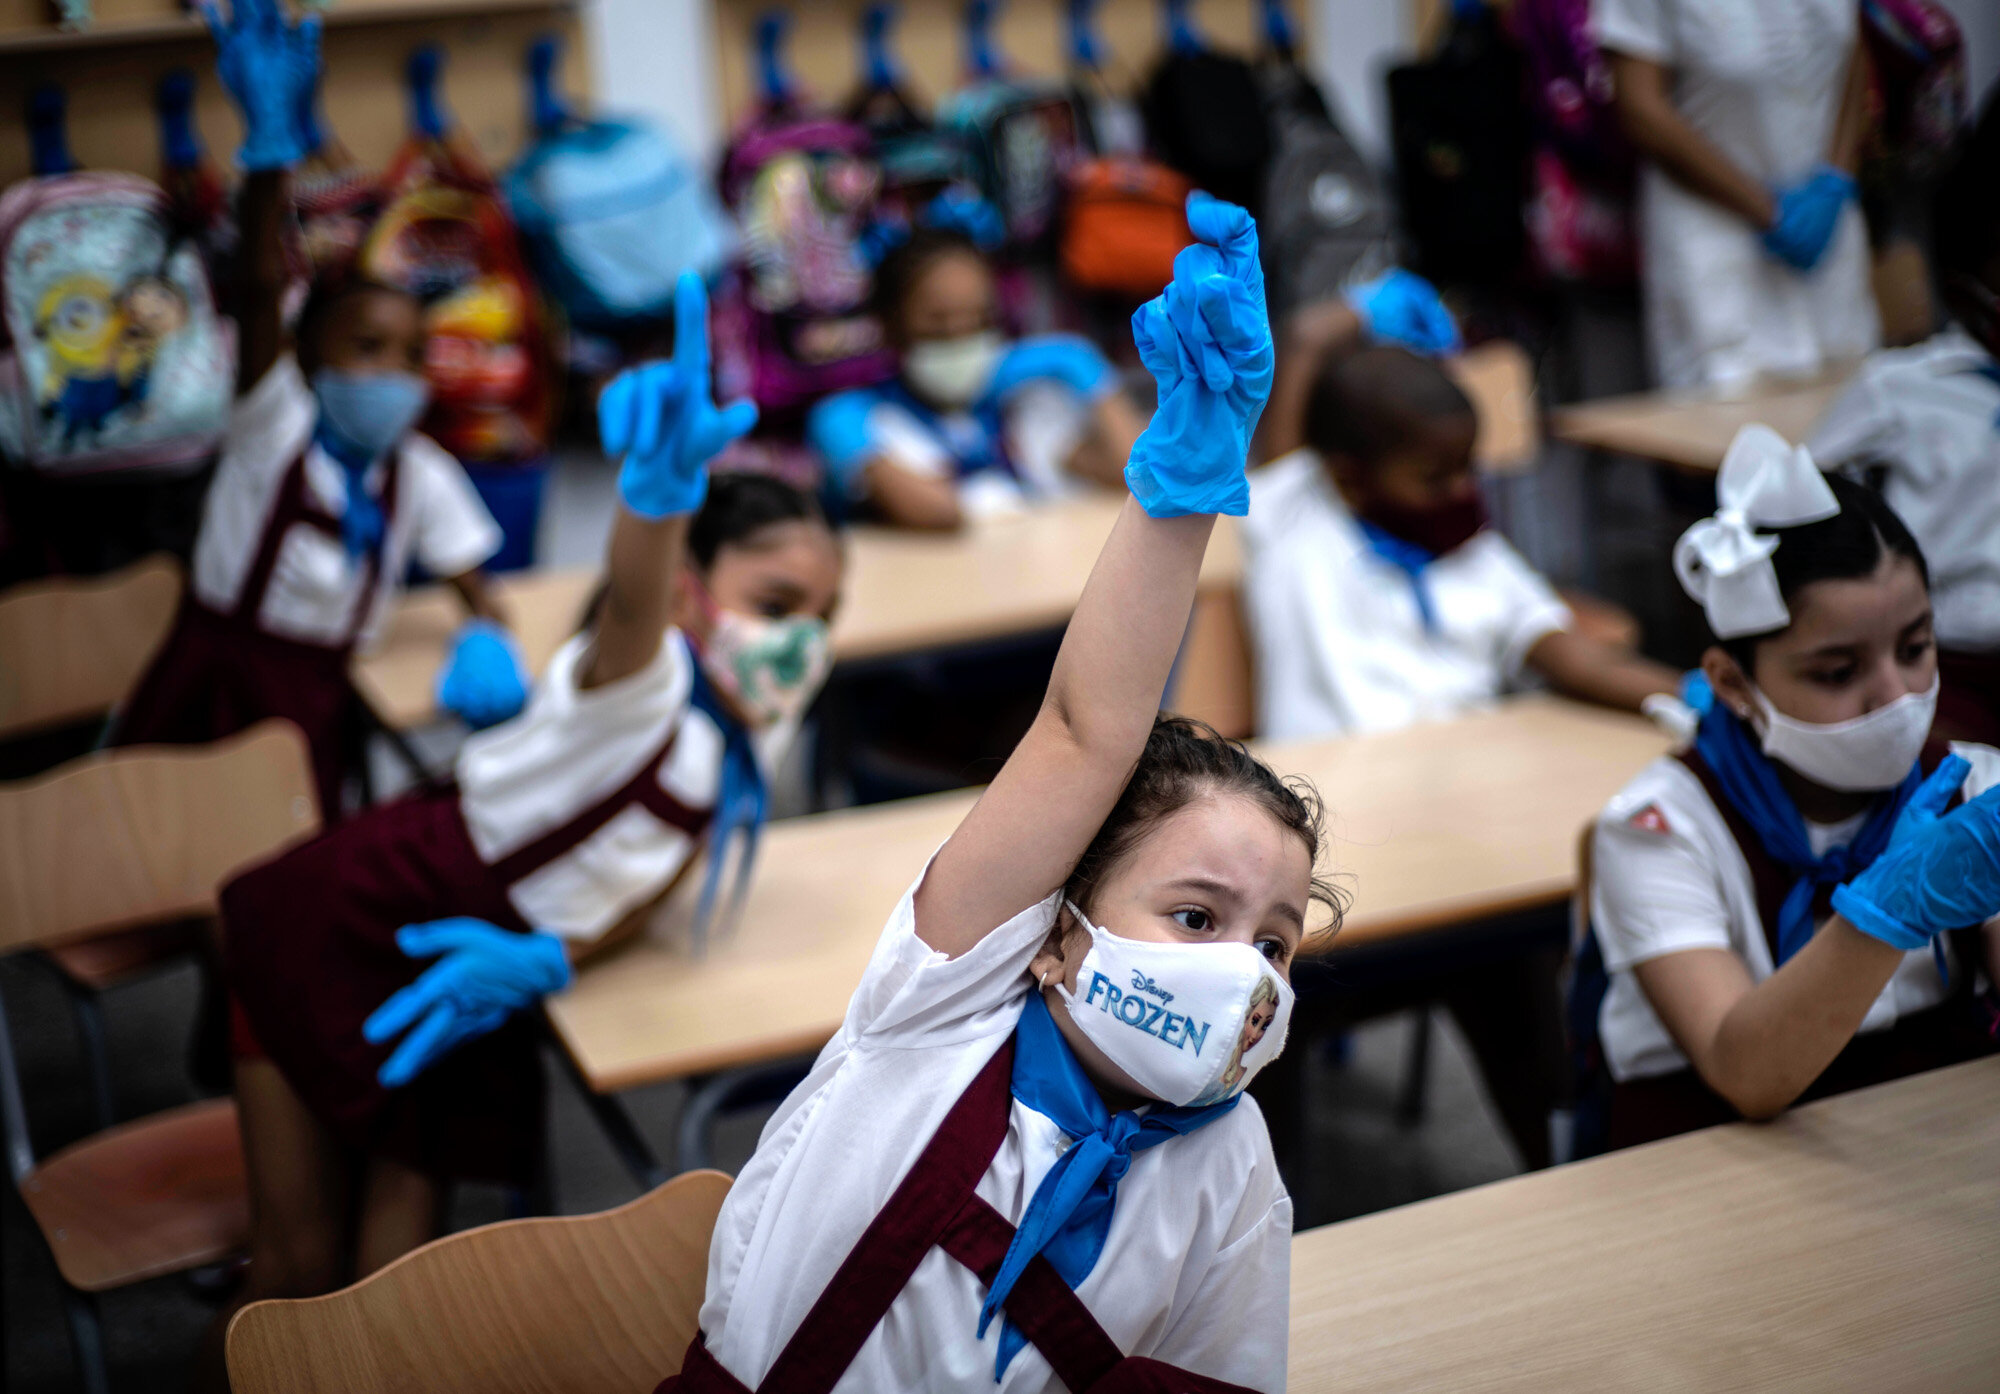 Wearing masks and plastic gloves to prevent the spread of the coronavirus, girls raise their hands during class in Havana, Cuba, on Monday, Nov. 2, 2020. Tens of thousands of school children returned to class Monday in Havana for the first time since April. (AP Photo/Ramon Espinosa)